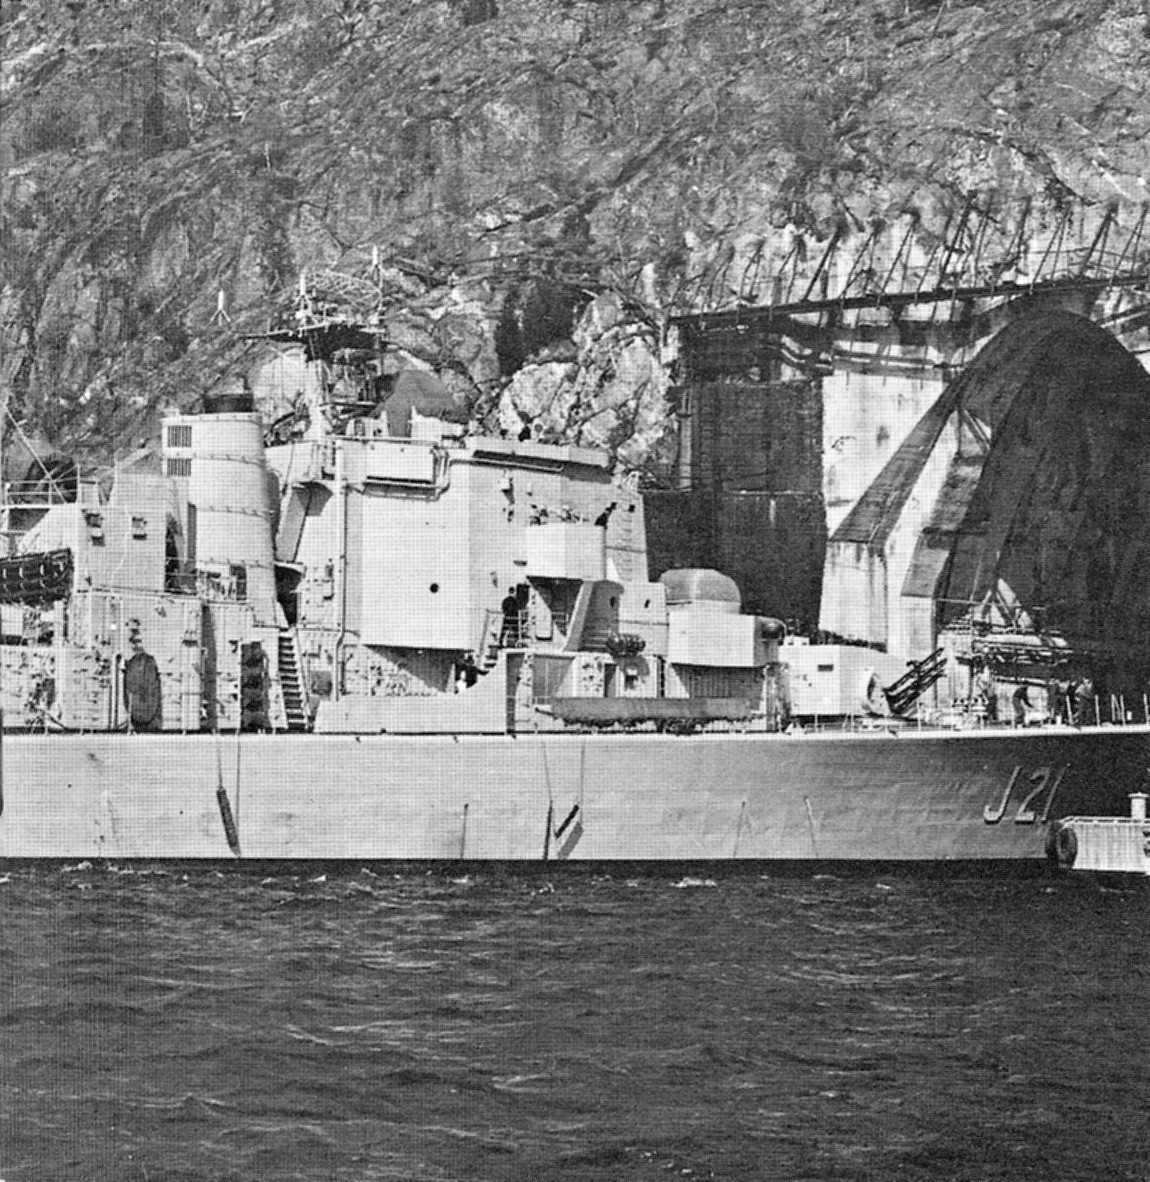 HMS_Södermanland_in_Tunnel.jpg